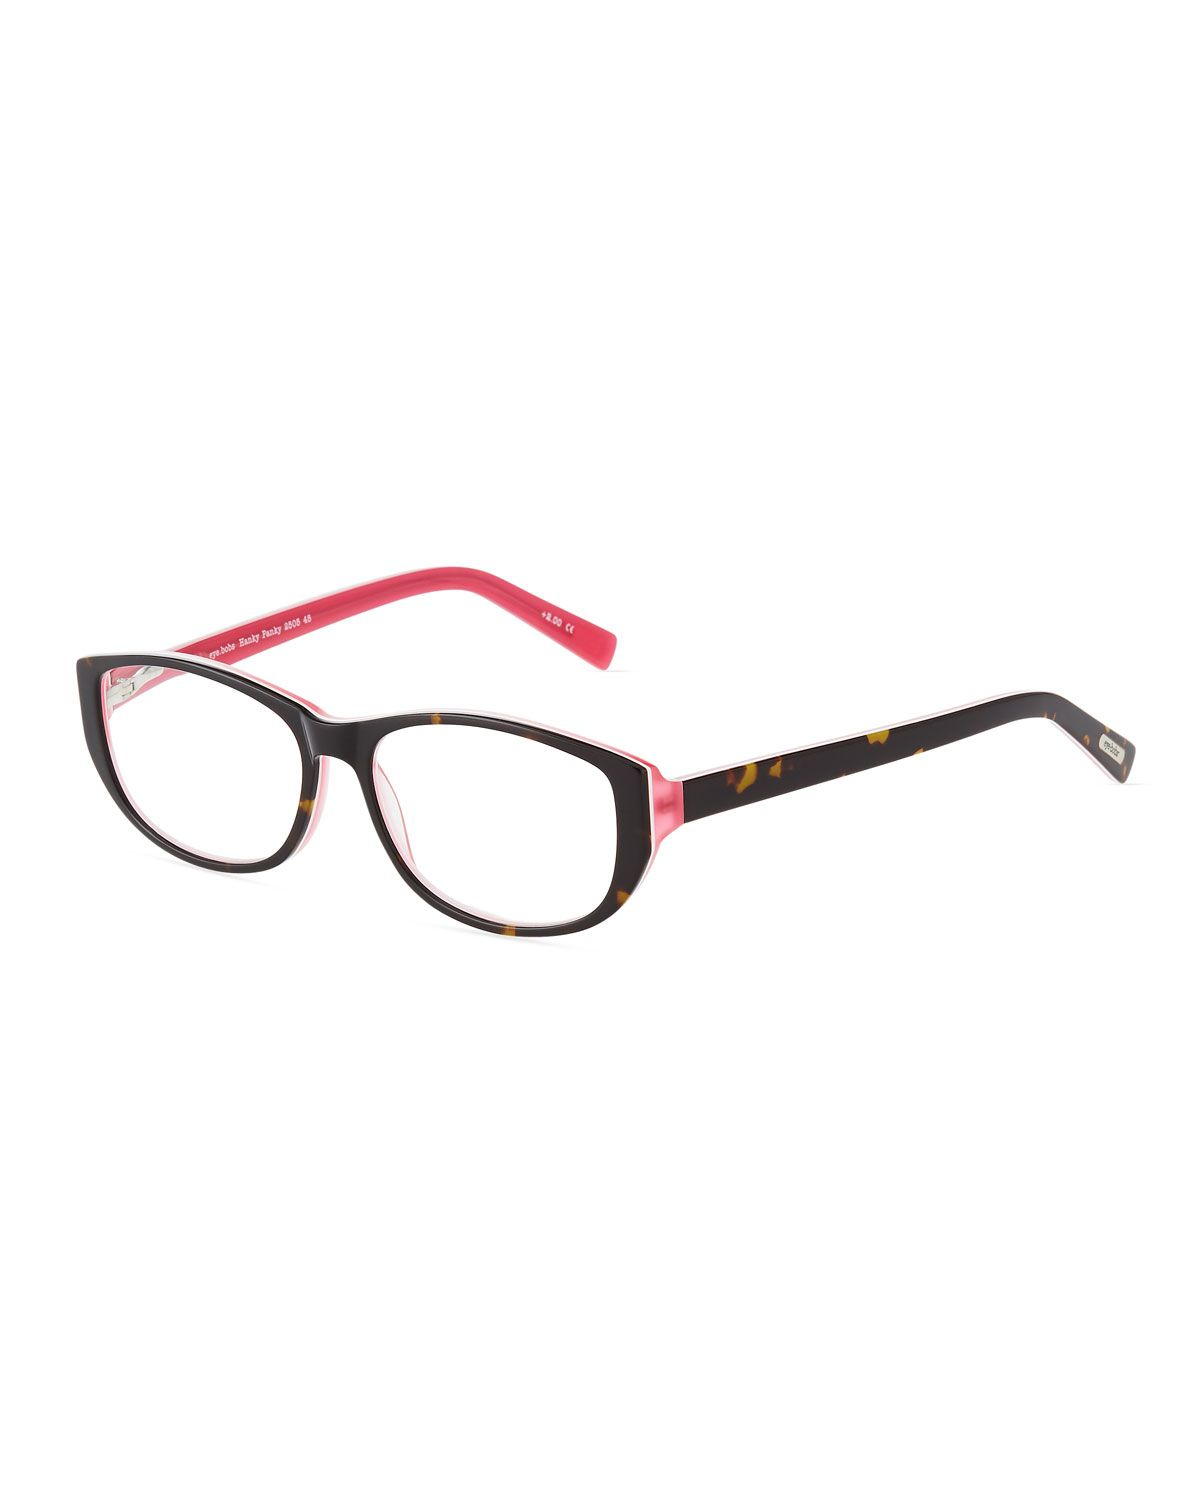 d645f42d99 EYEBOBS HANKY PANKY SQUARE ACETATE READING GLASSES